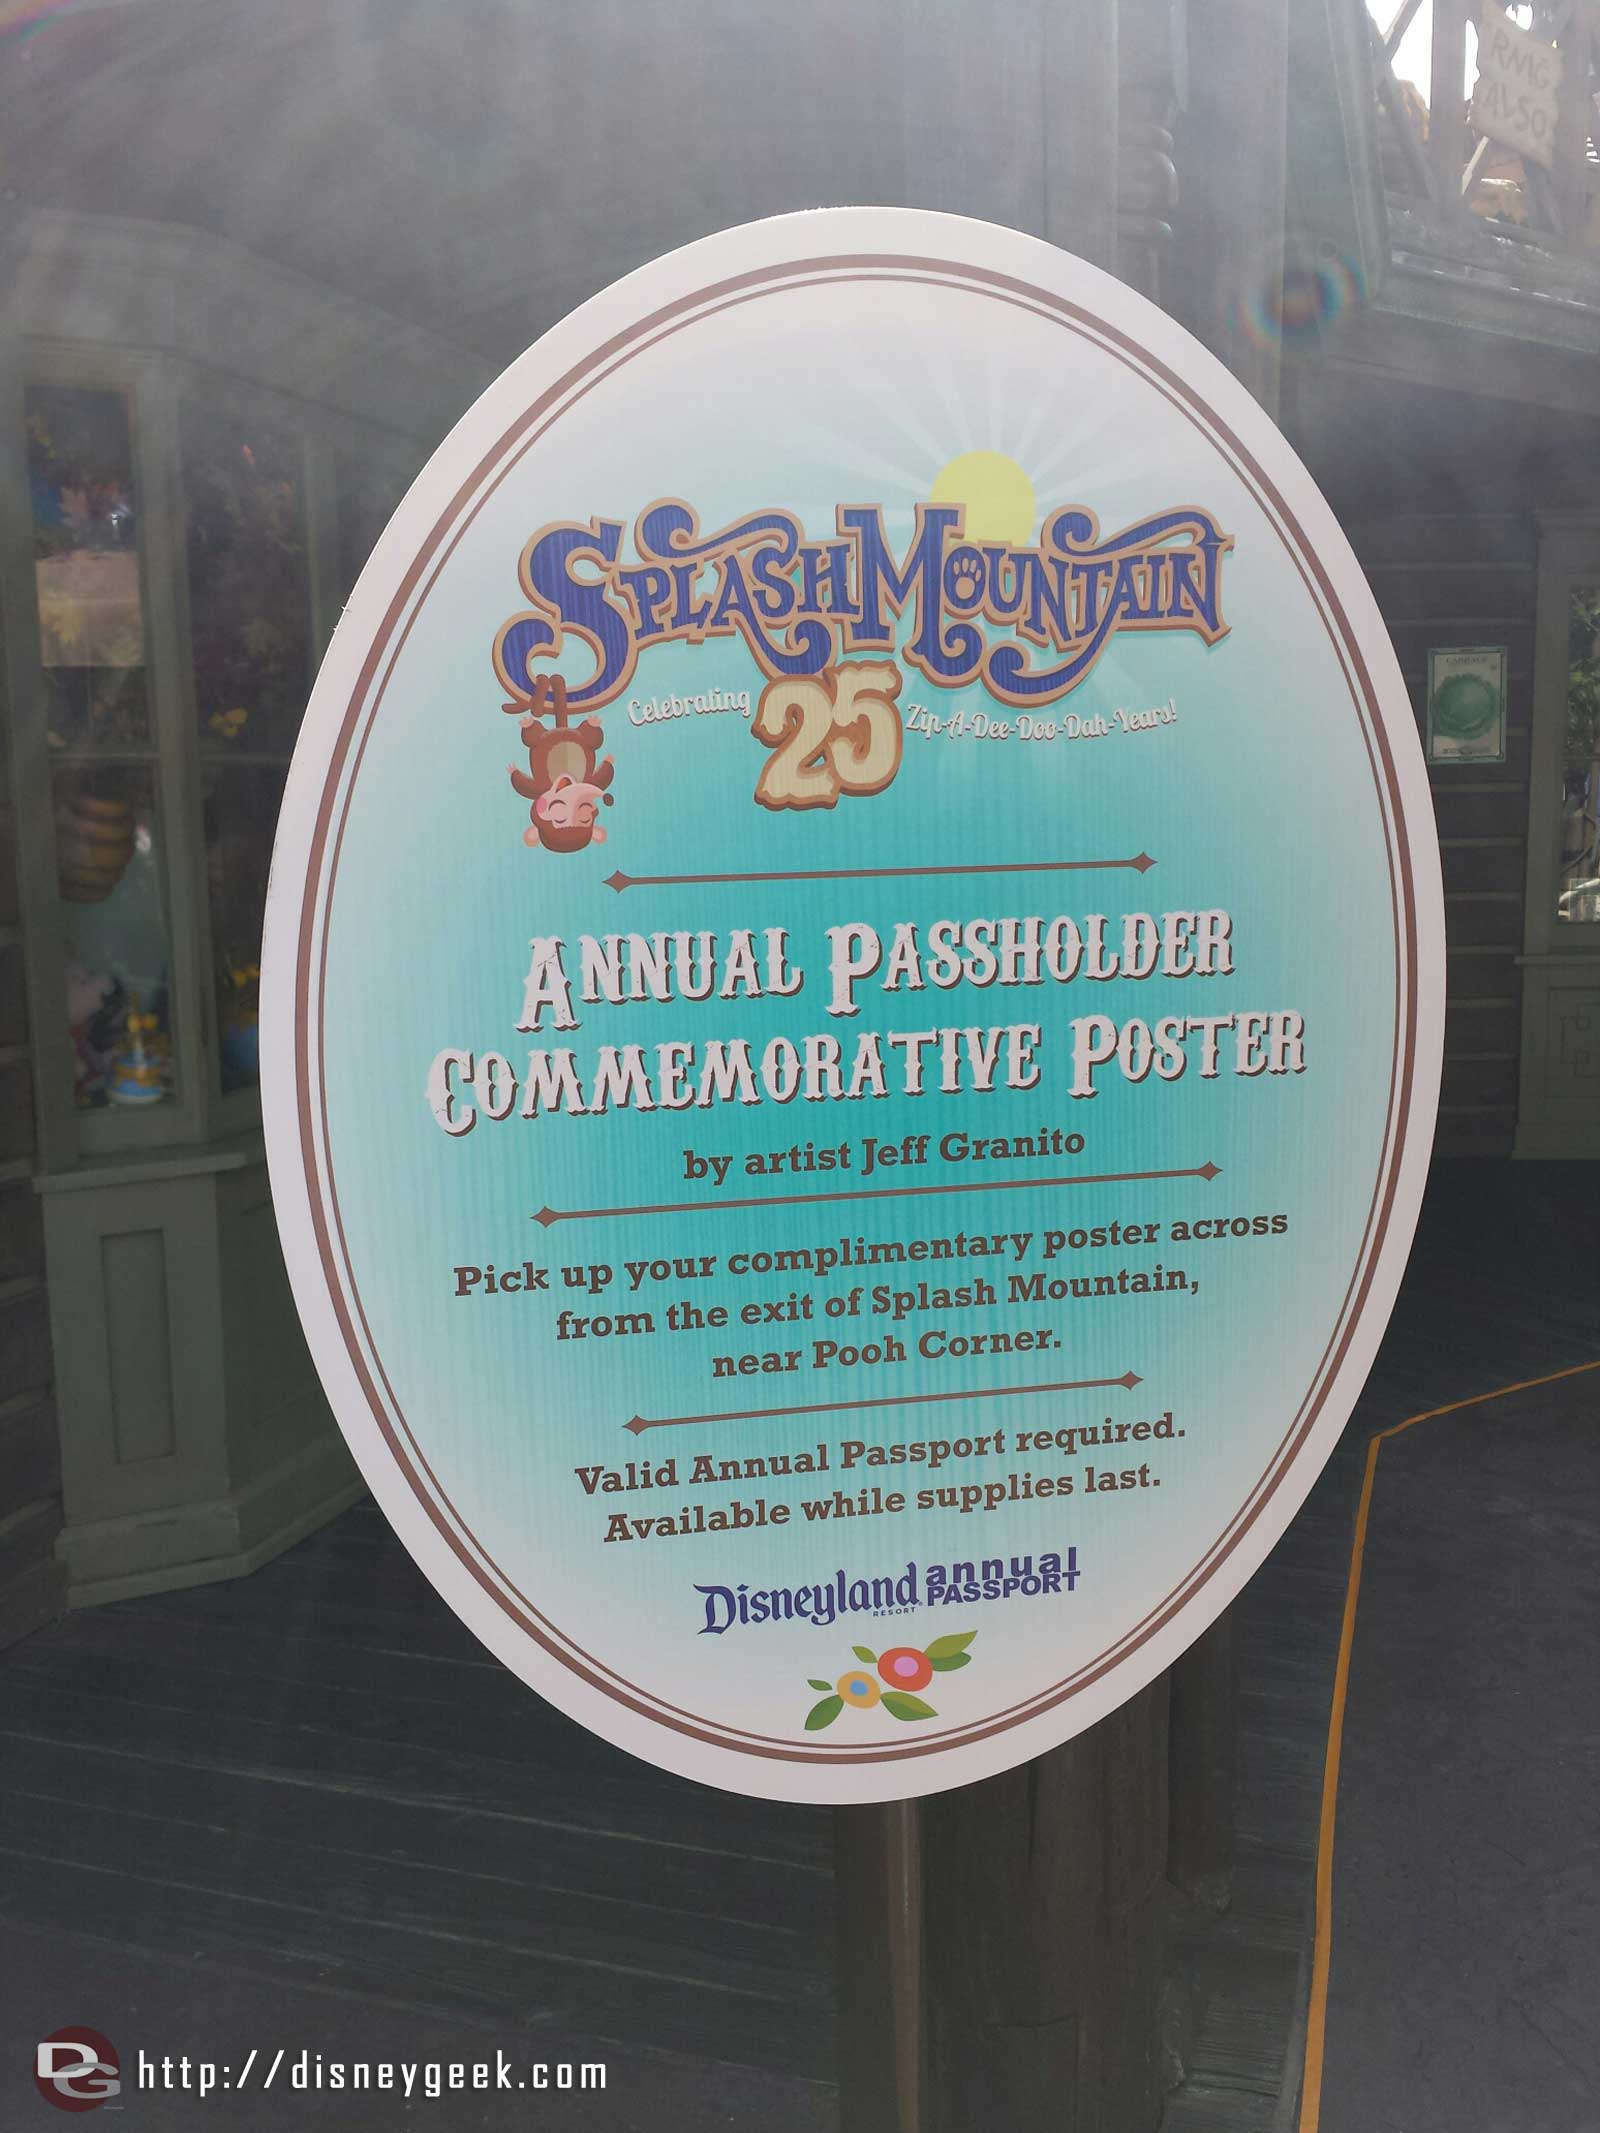 Annual Passholder Commemorative Posters for Splash Mountain's 25th anniversary